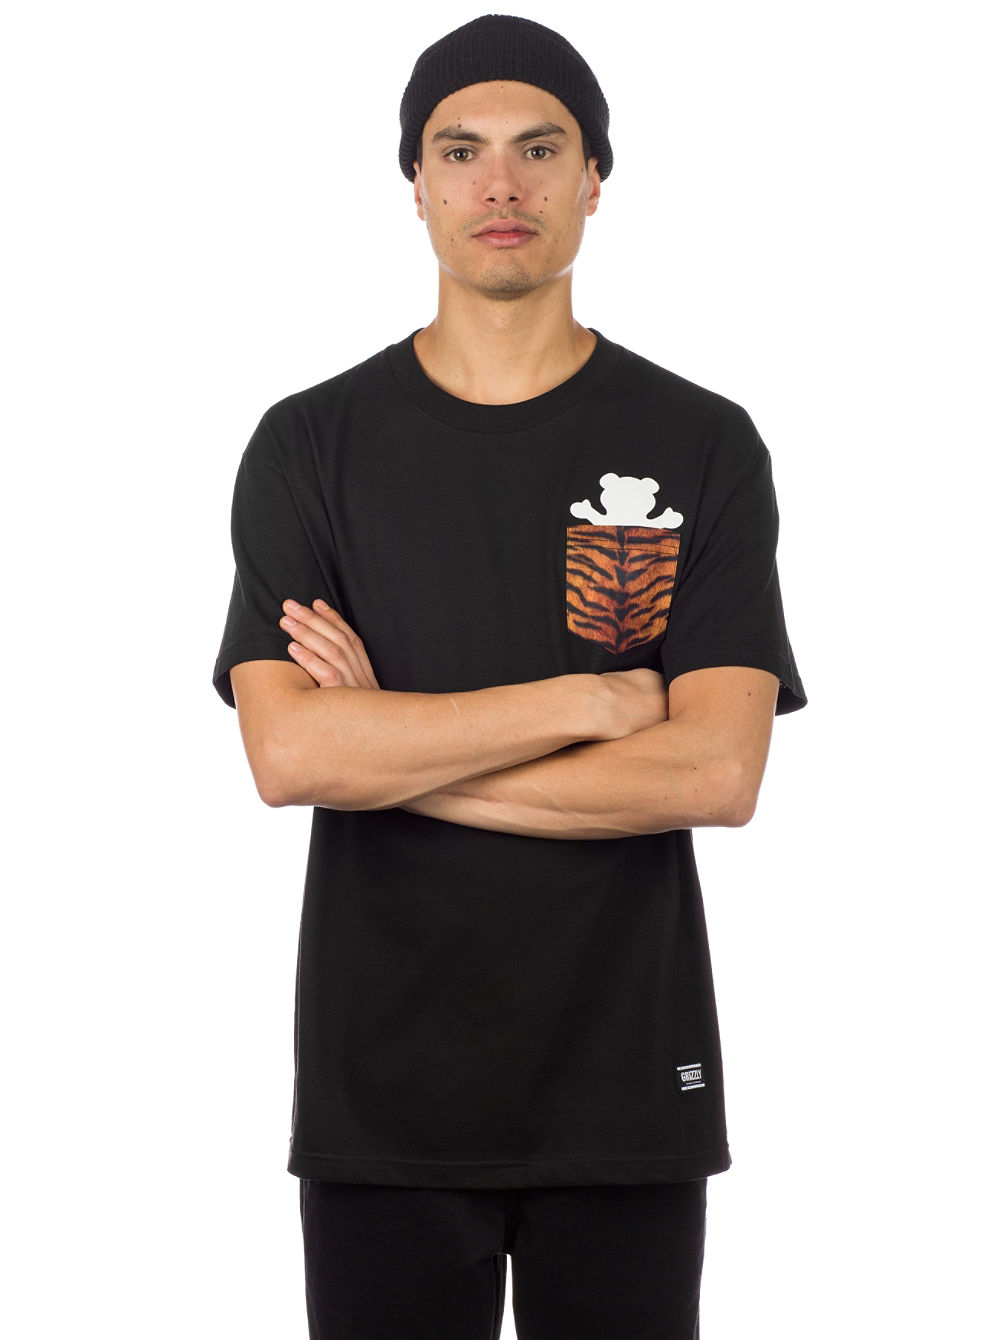 Tiger Pocket T-shirt